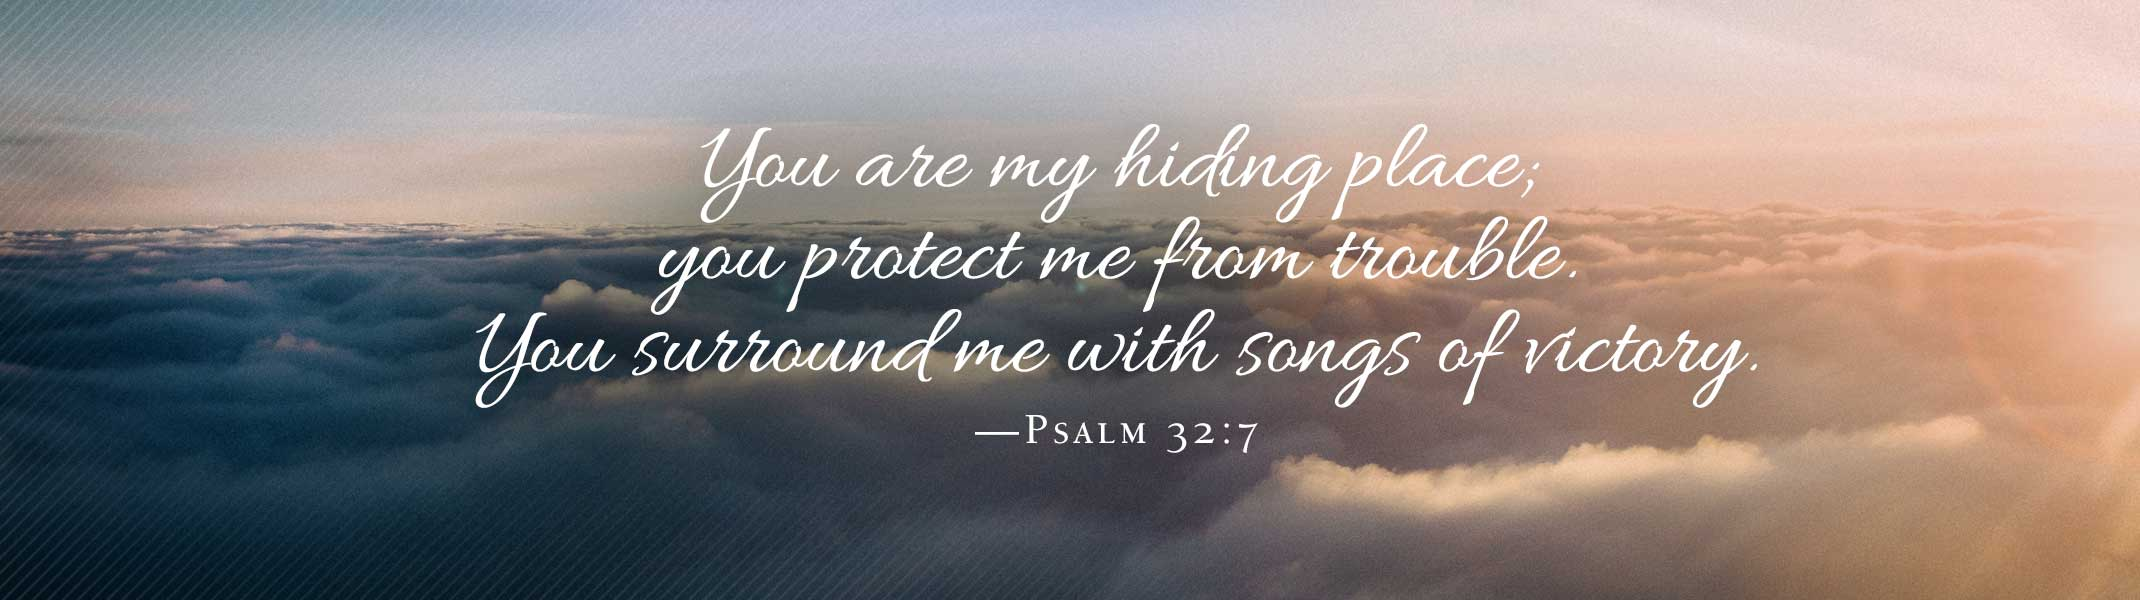 You are my hiding place; you protect me from trouble. You surround me with songs of victory. (Psalm 32:7)